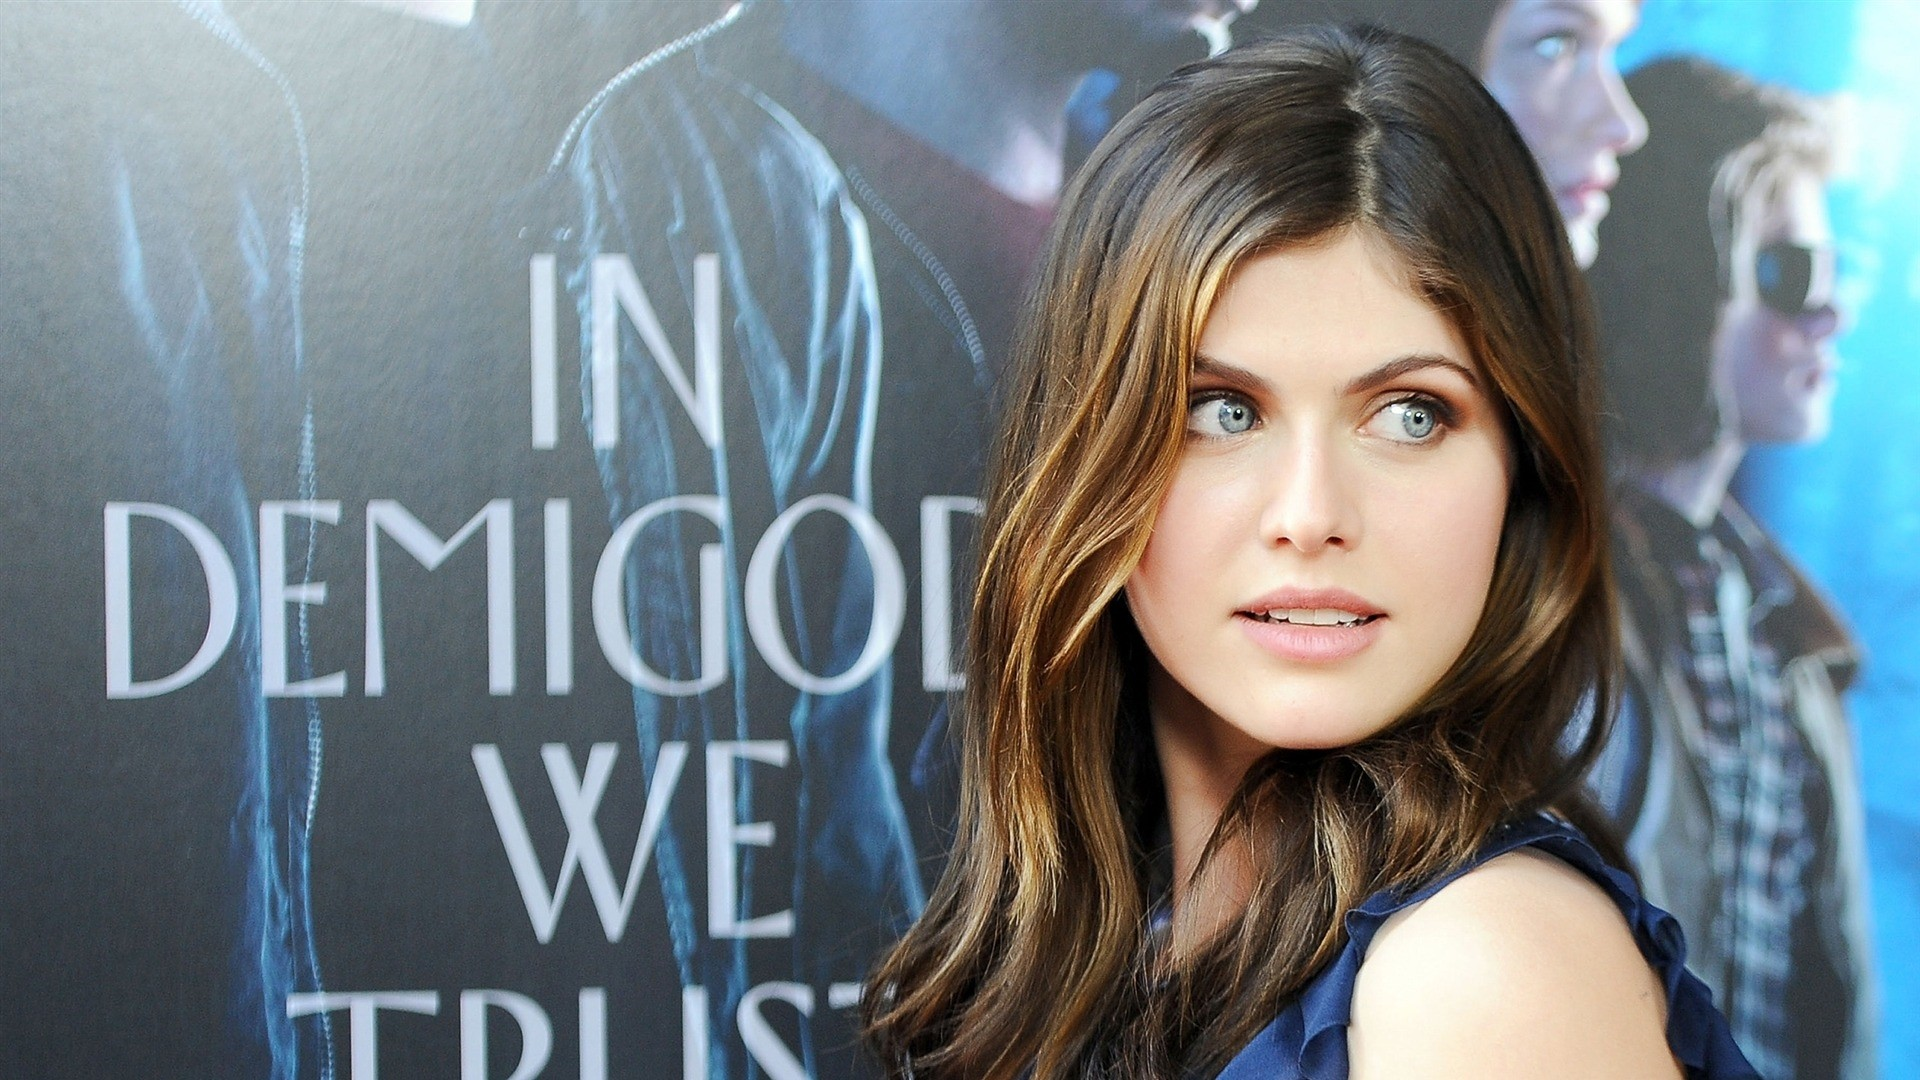 Alexandra Daddario vertical wallpaper hd